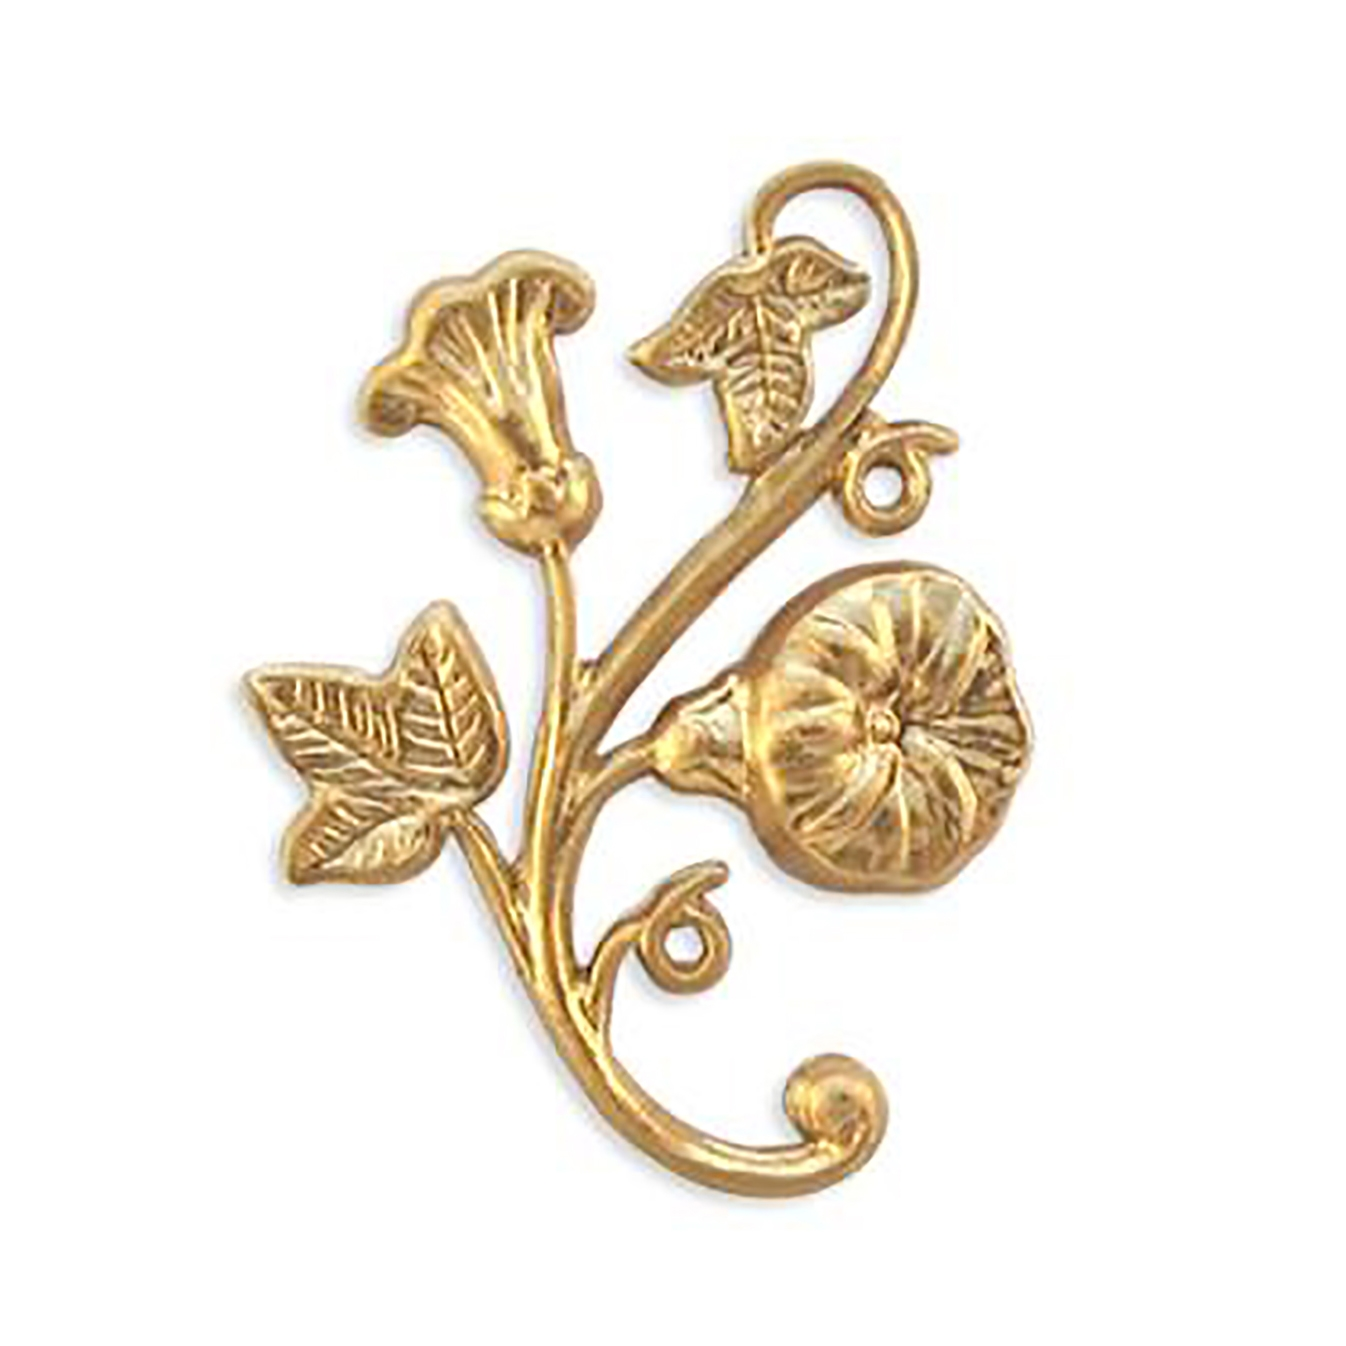 brass floral leaf sprig, floral stem, raw, 09276, jewelry making supplies, vintage jewelry supplies, brass flowers, brass leaves, US made, nickel free jewelry supplies, bsueboutiques,